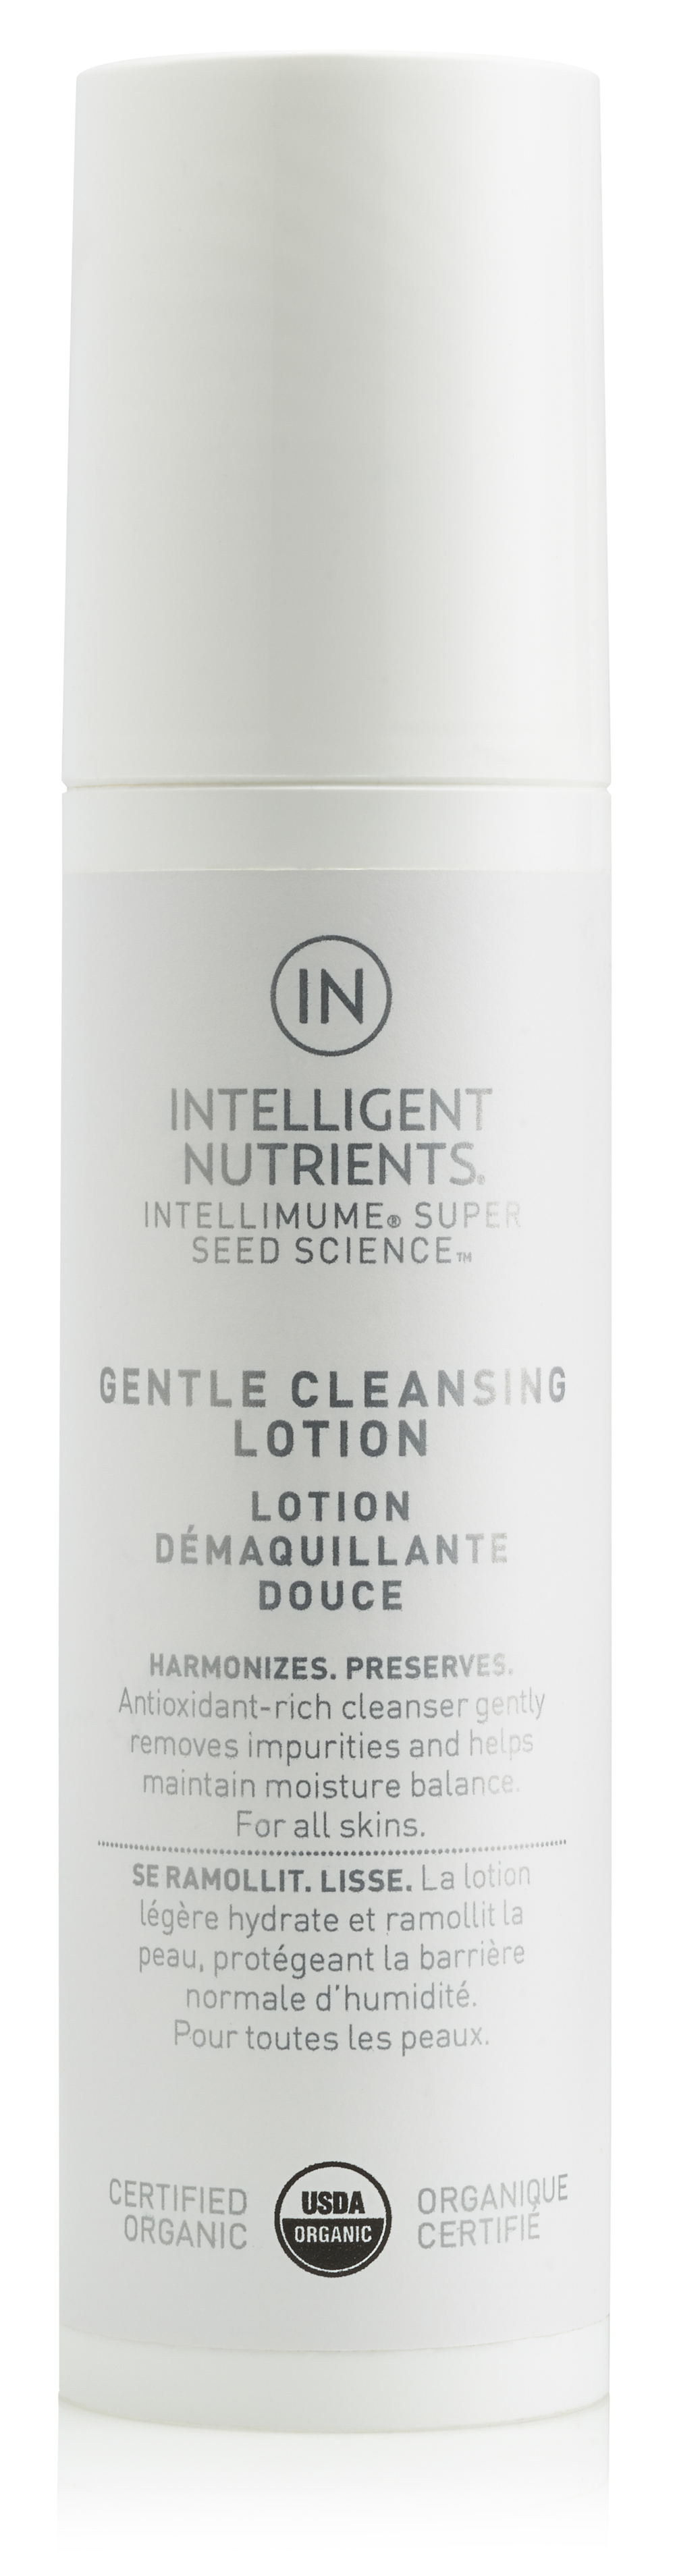 Gentle Cleansing Lotion (DKK370/90ml)